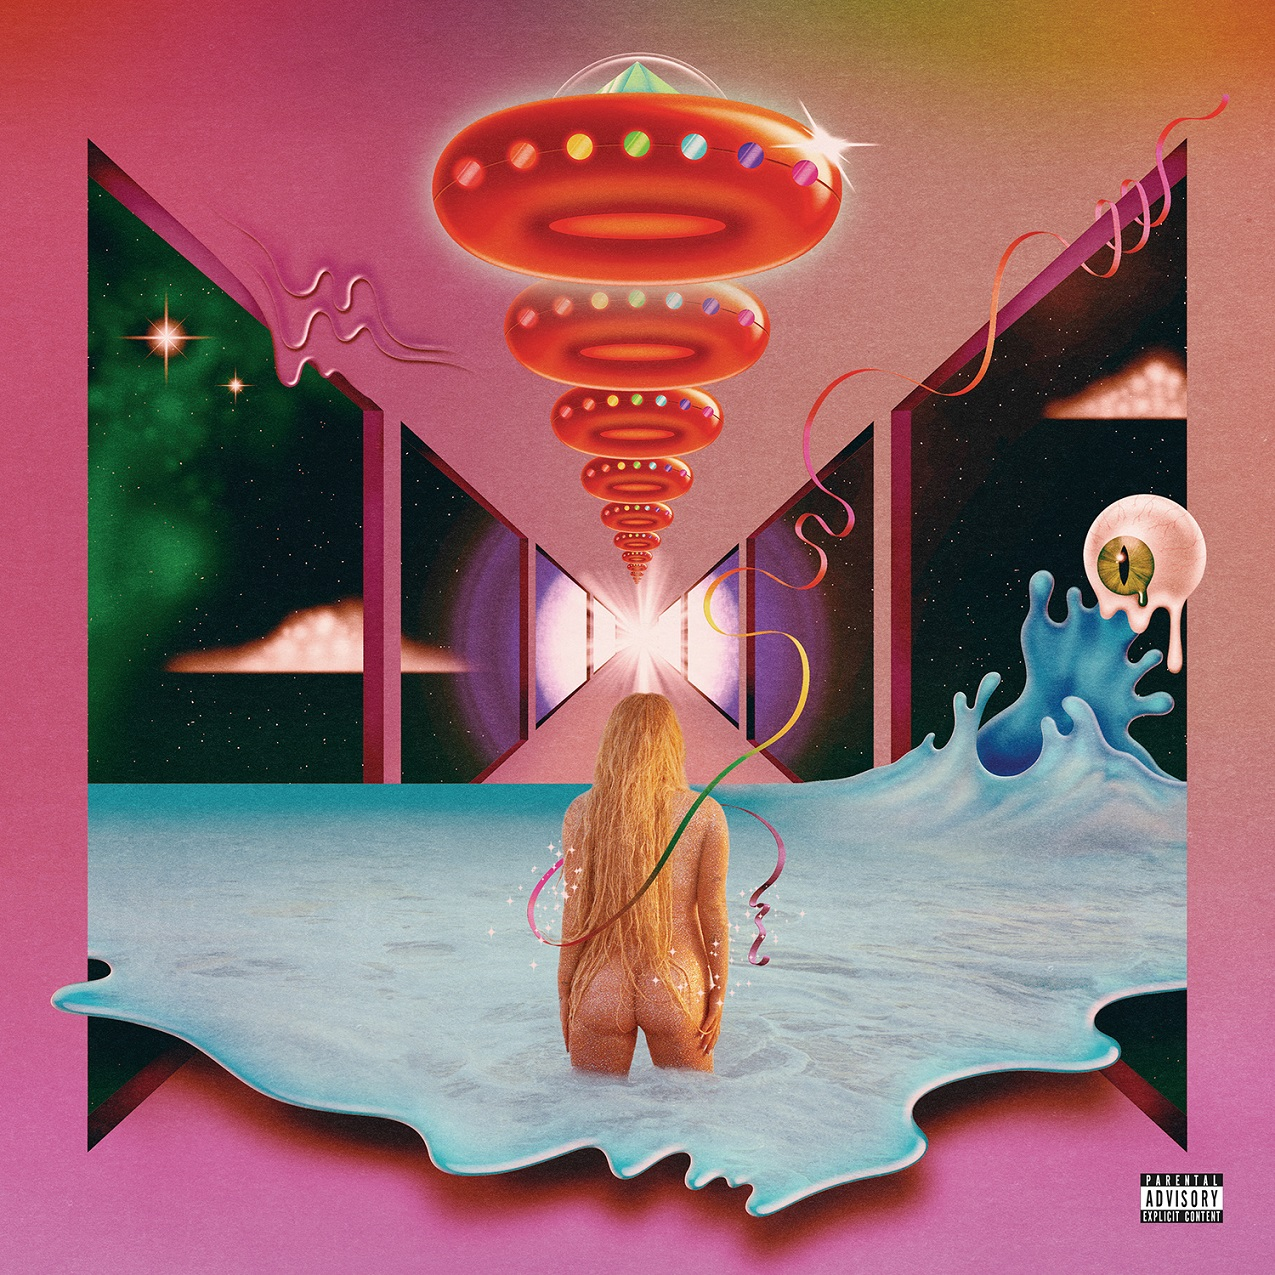 Rainbow - Kesha album art